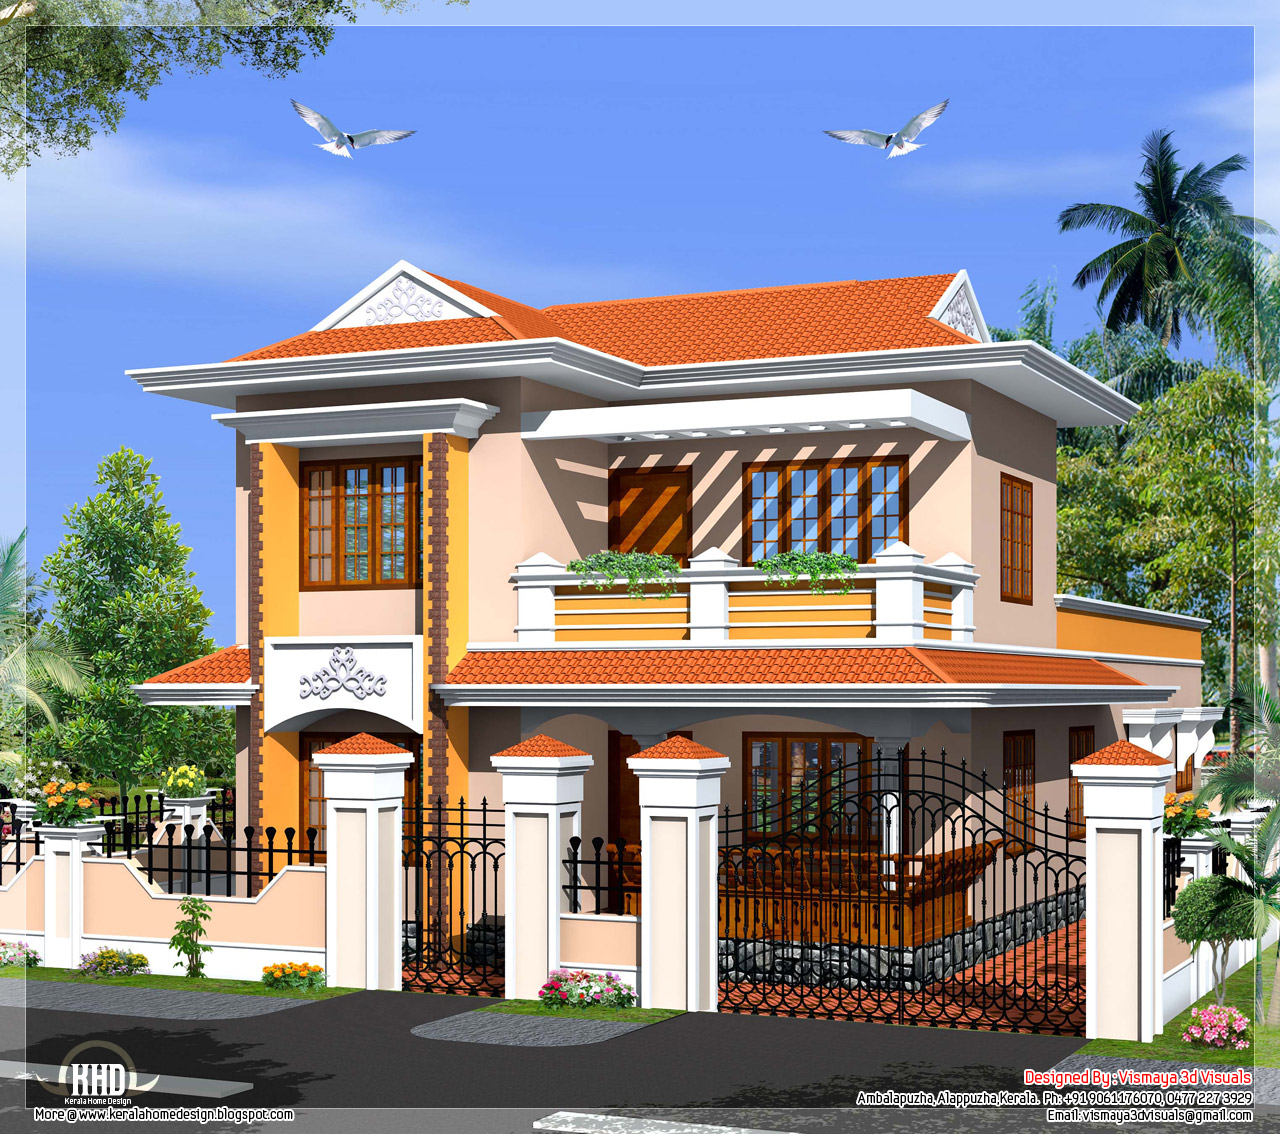 Kerala model villa in 2110 in square feet kerala home Indian model house plan design